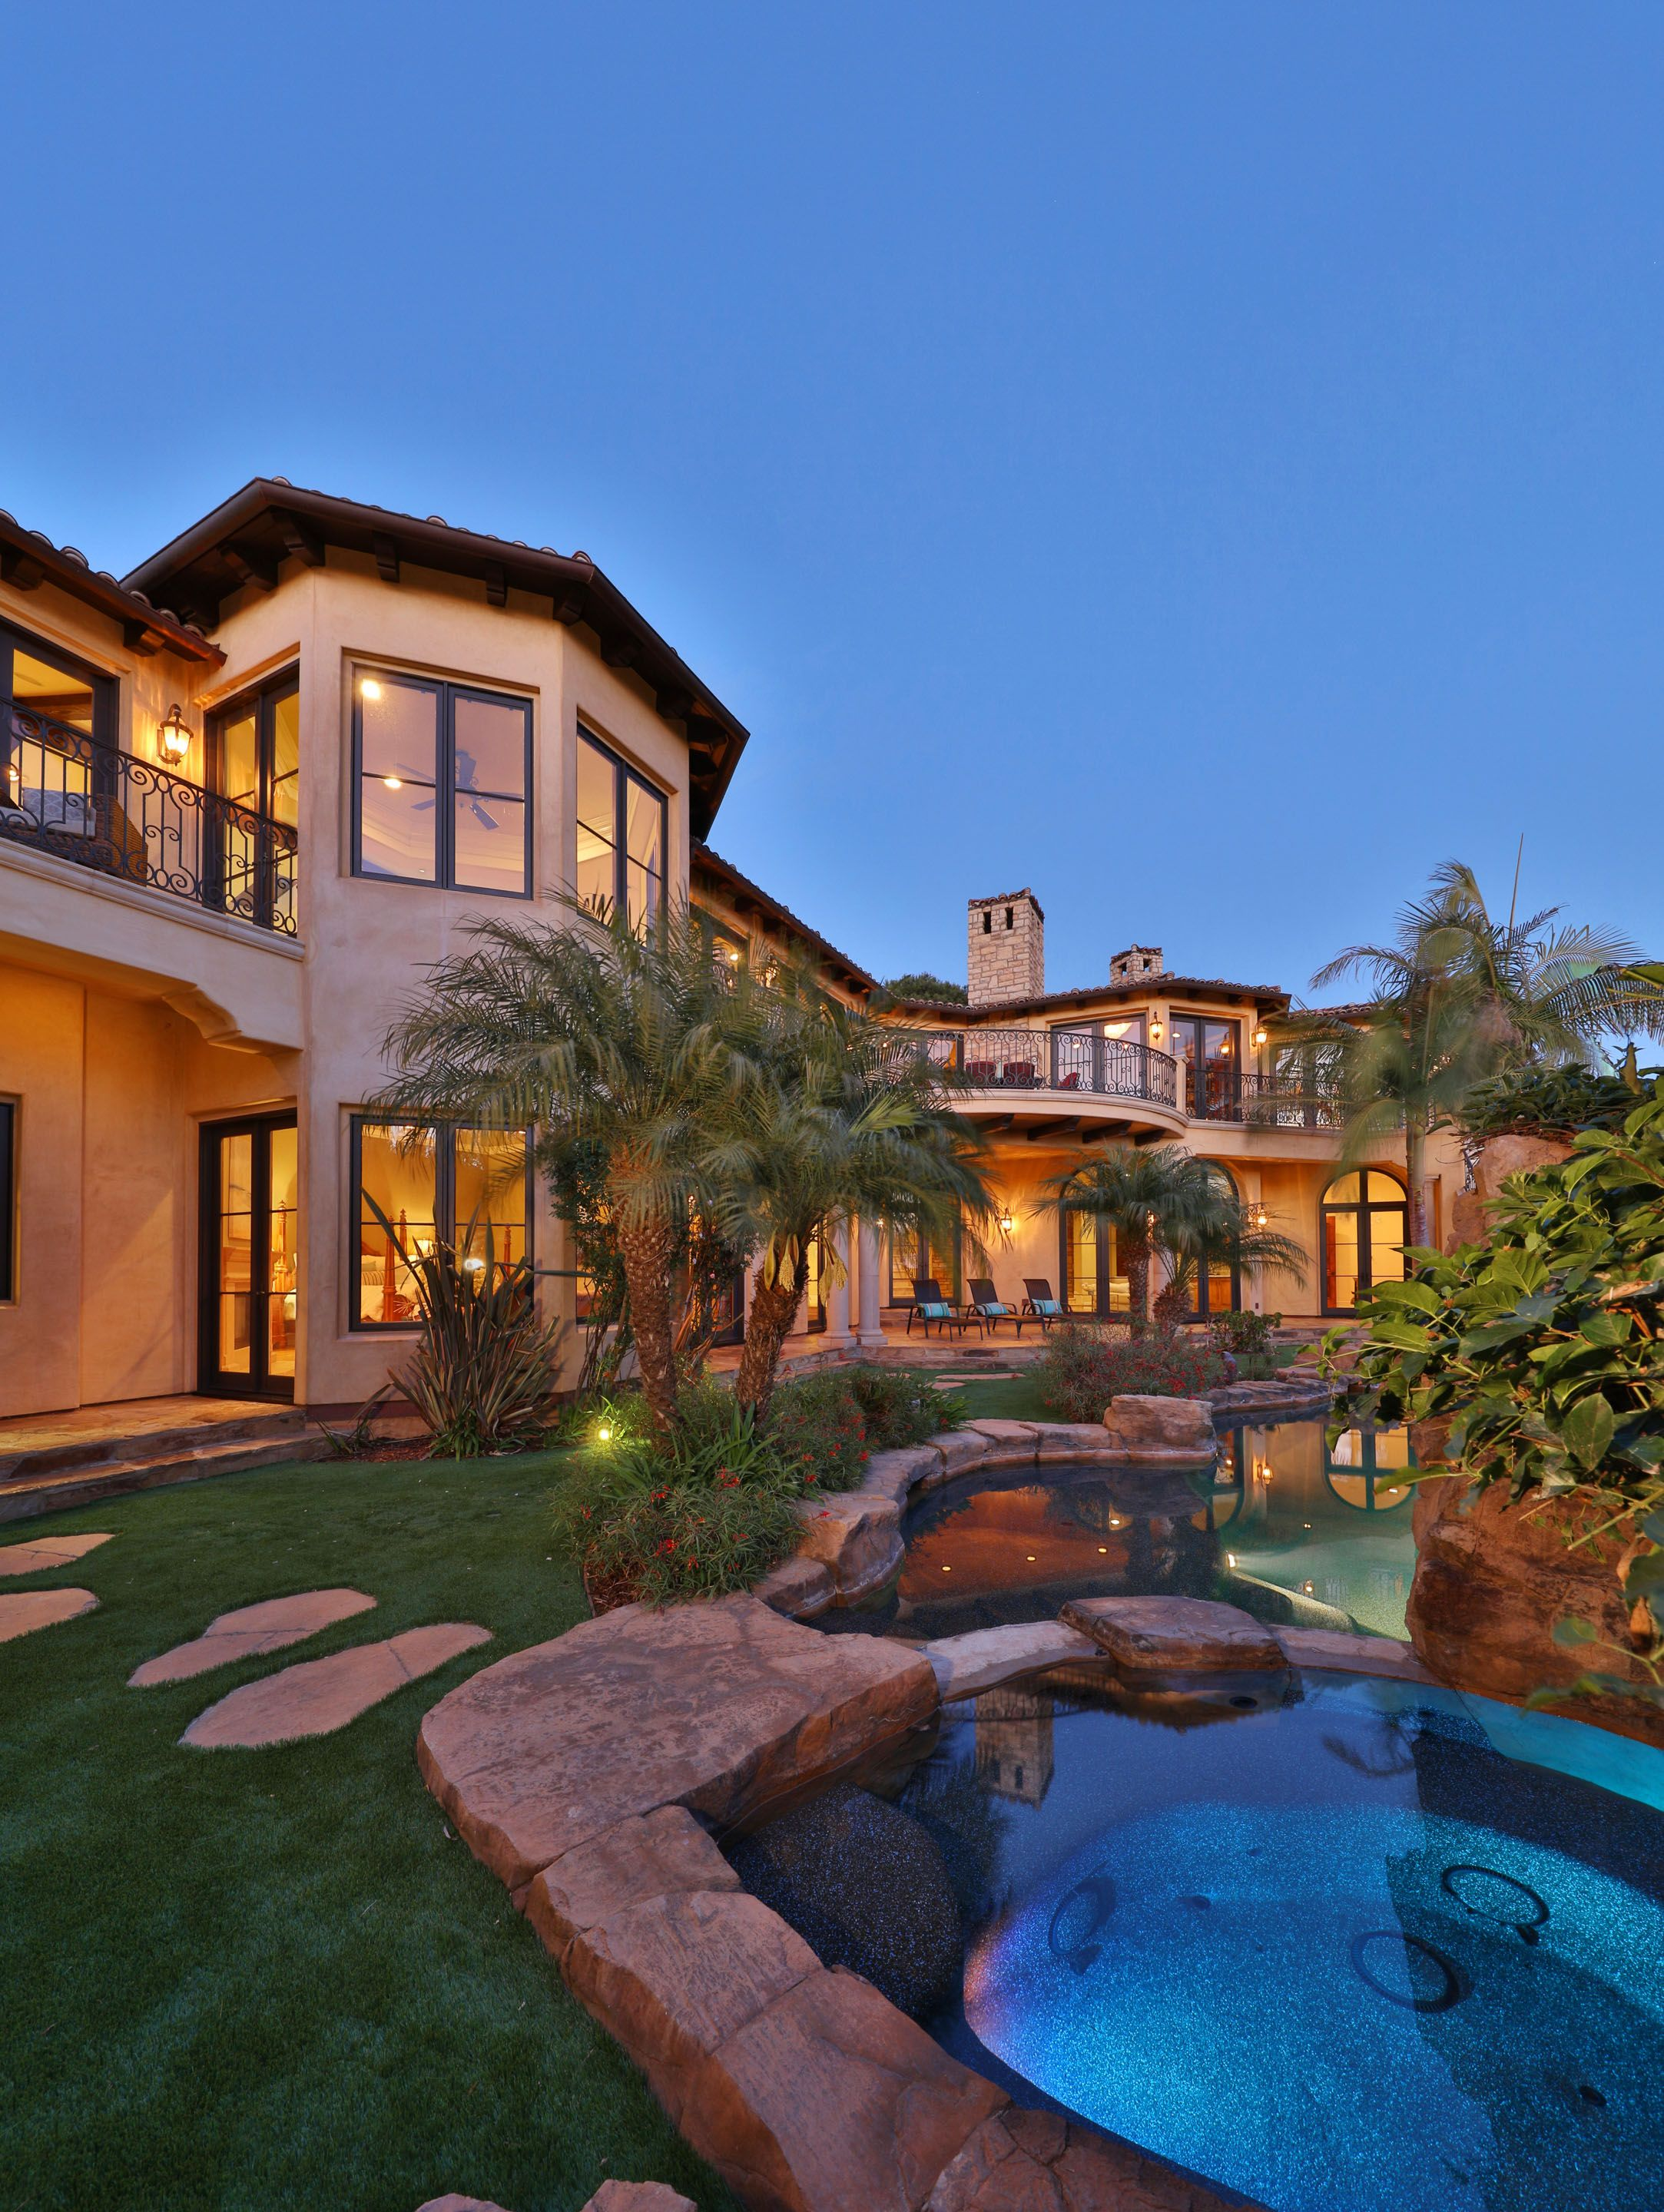 Southern California Luxury Home Exterior With Pool Luxury Homes Exterior Calabasas Homes House Exterior